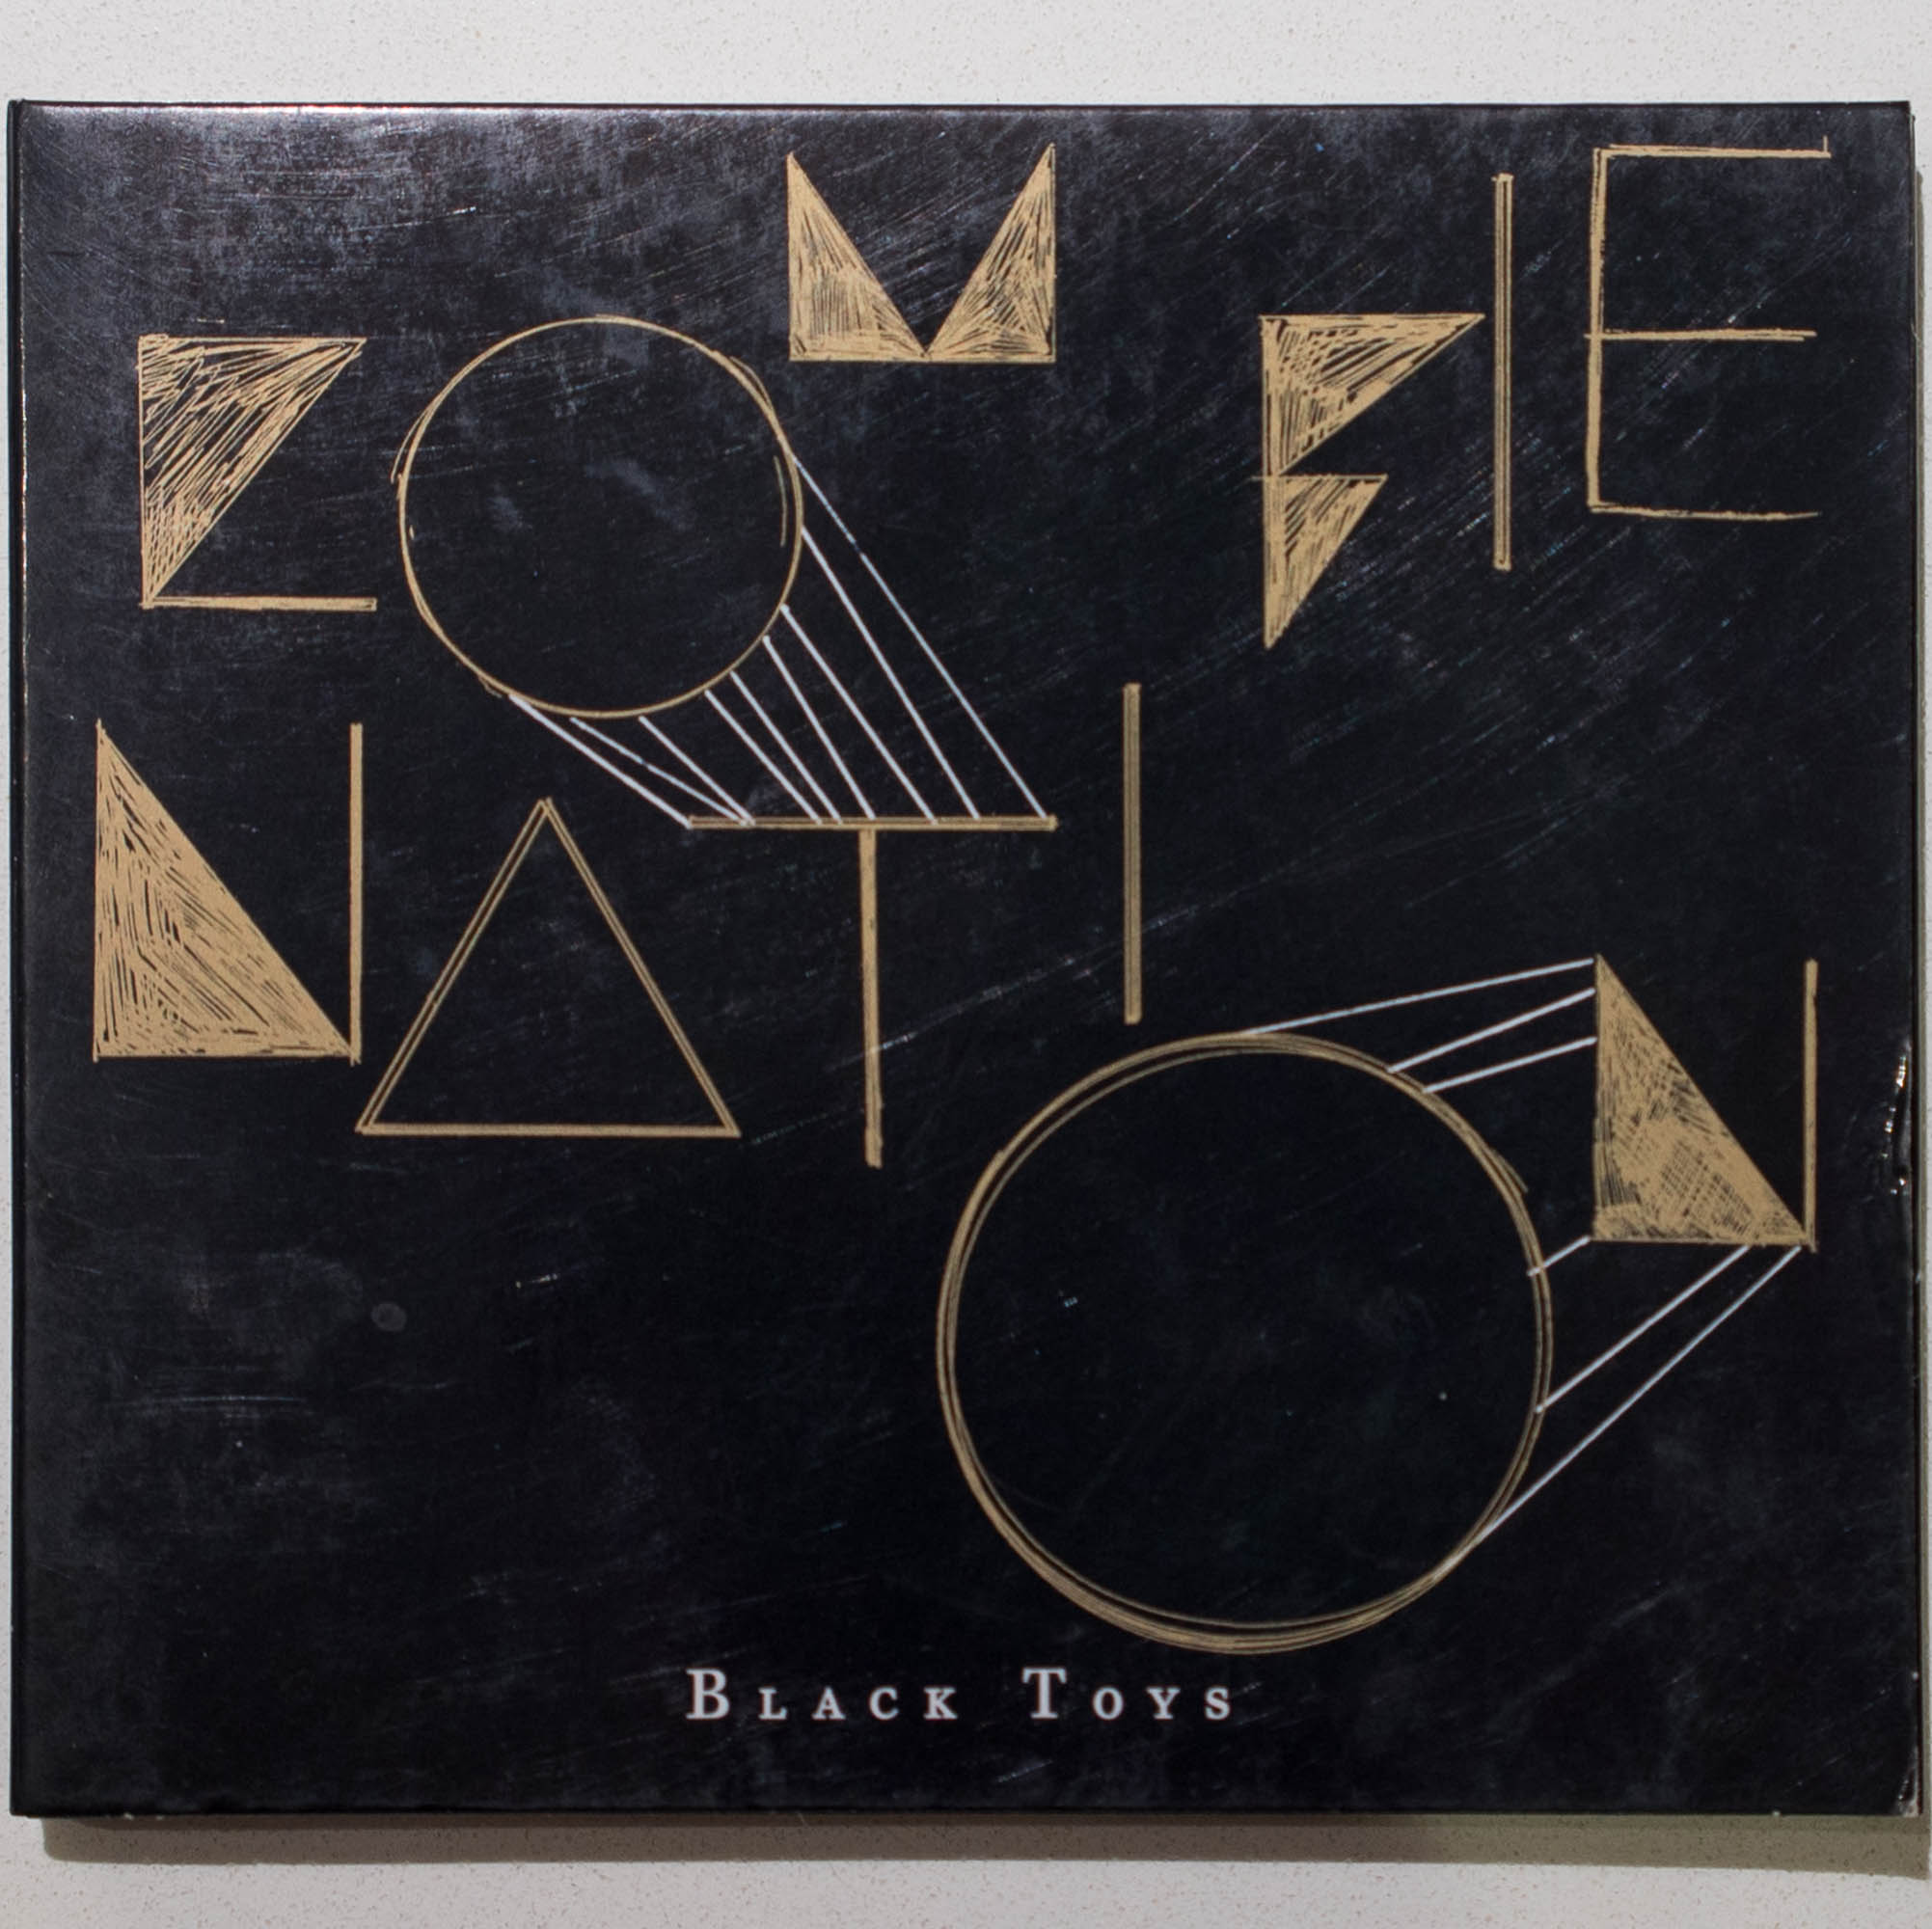 Zombie Nation - Black Toys LP CD dront cover